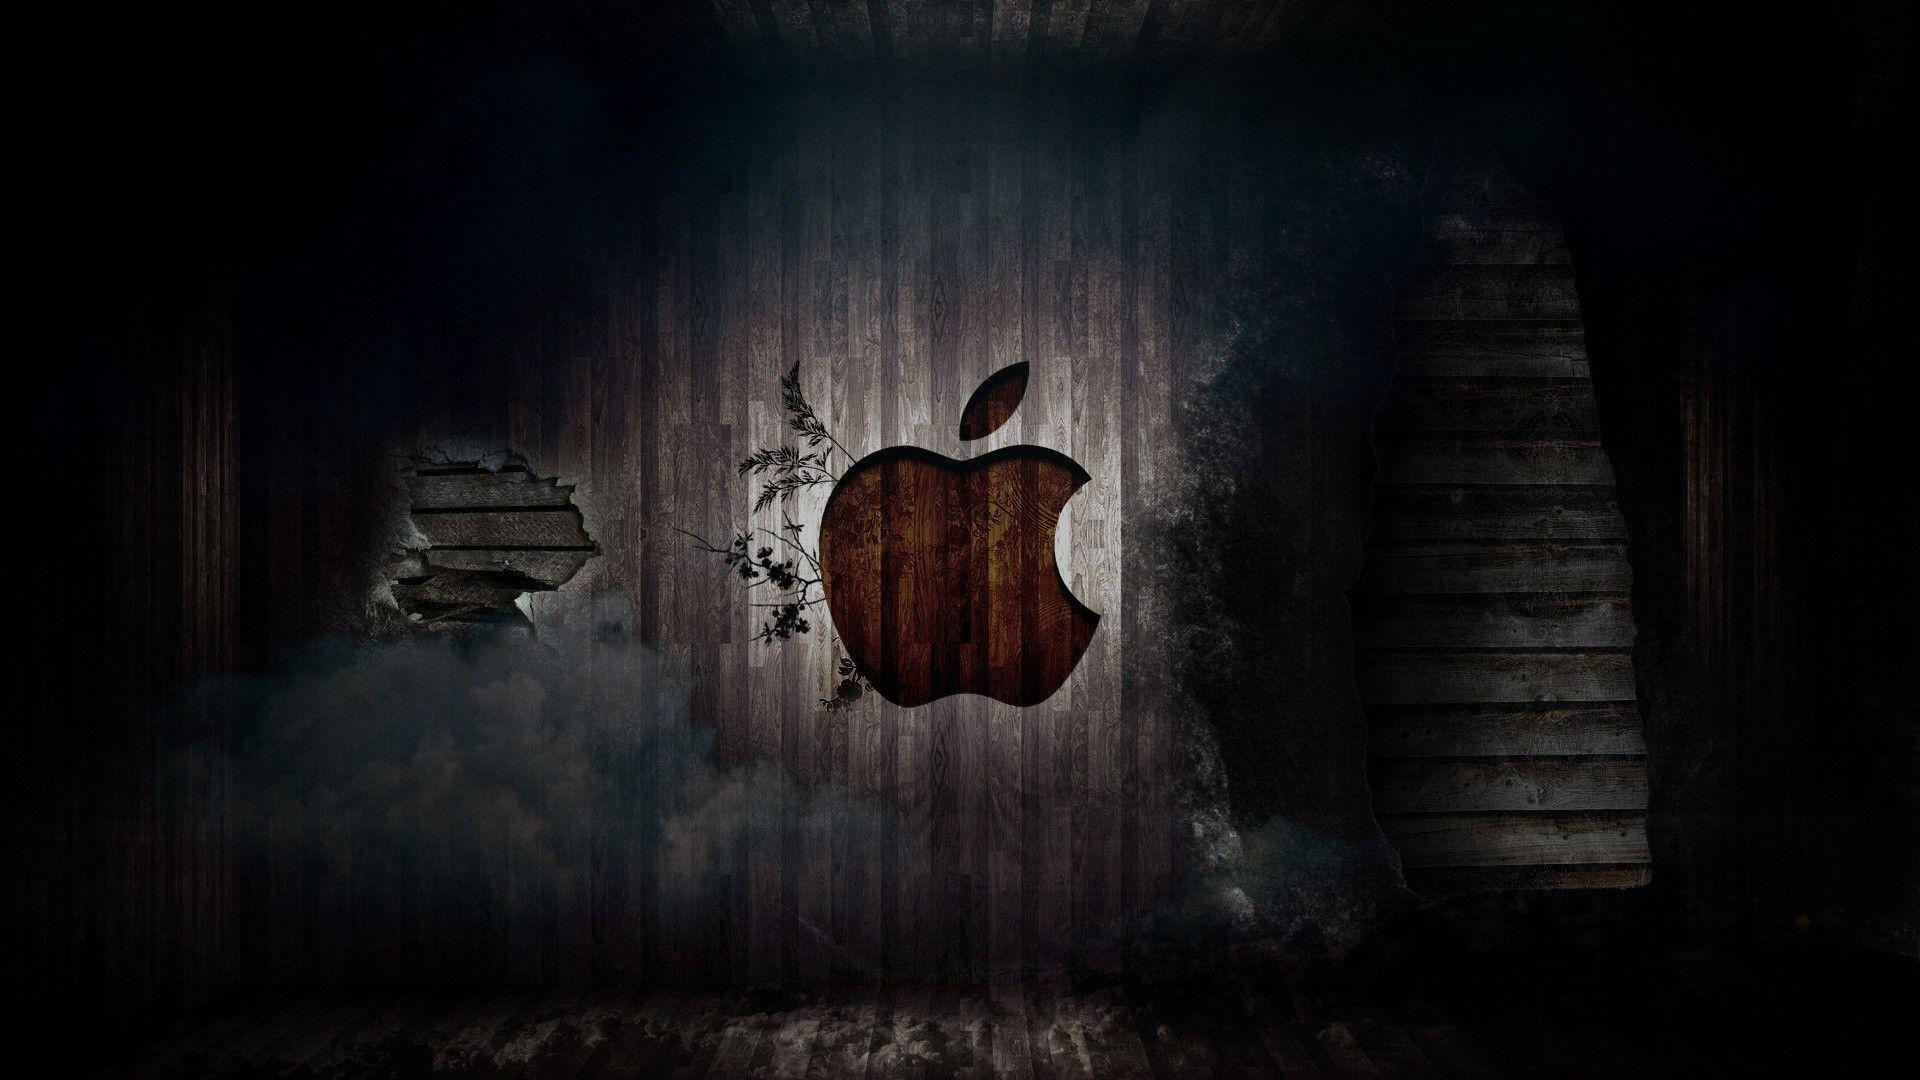 Wallpapers For > Wallpapers Hd 1080p Apple